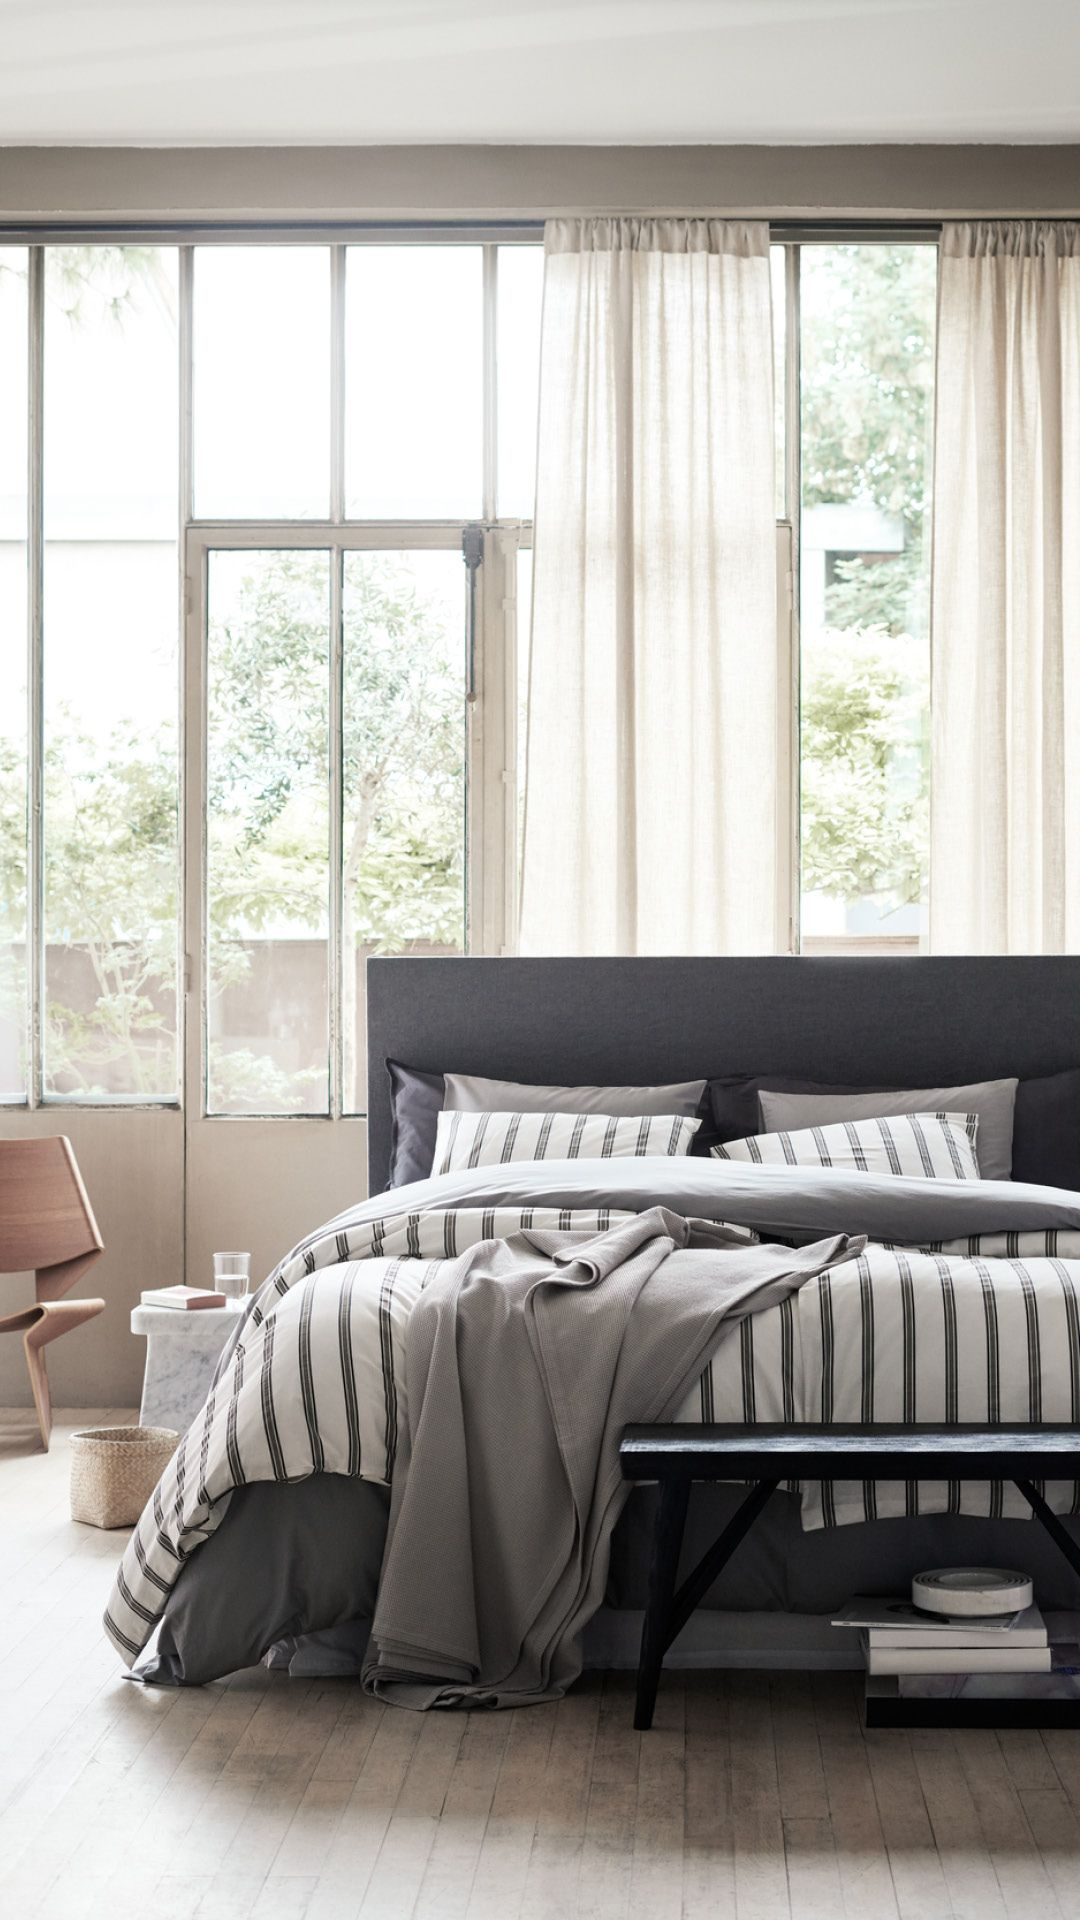 H M Home Love This Scandi Cool And Minimalistic Bedroom Styling